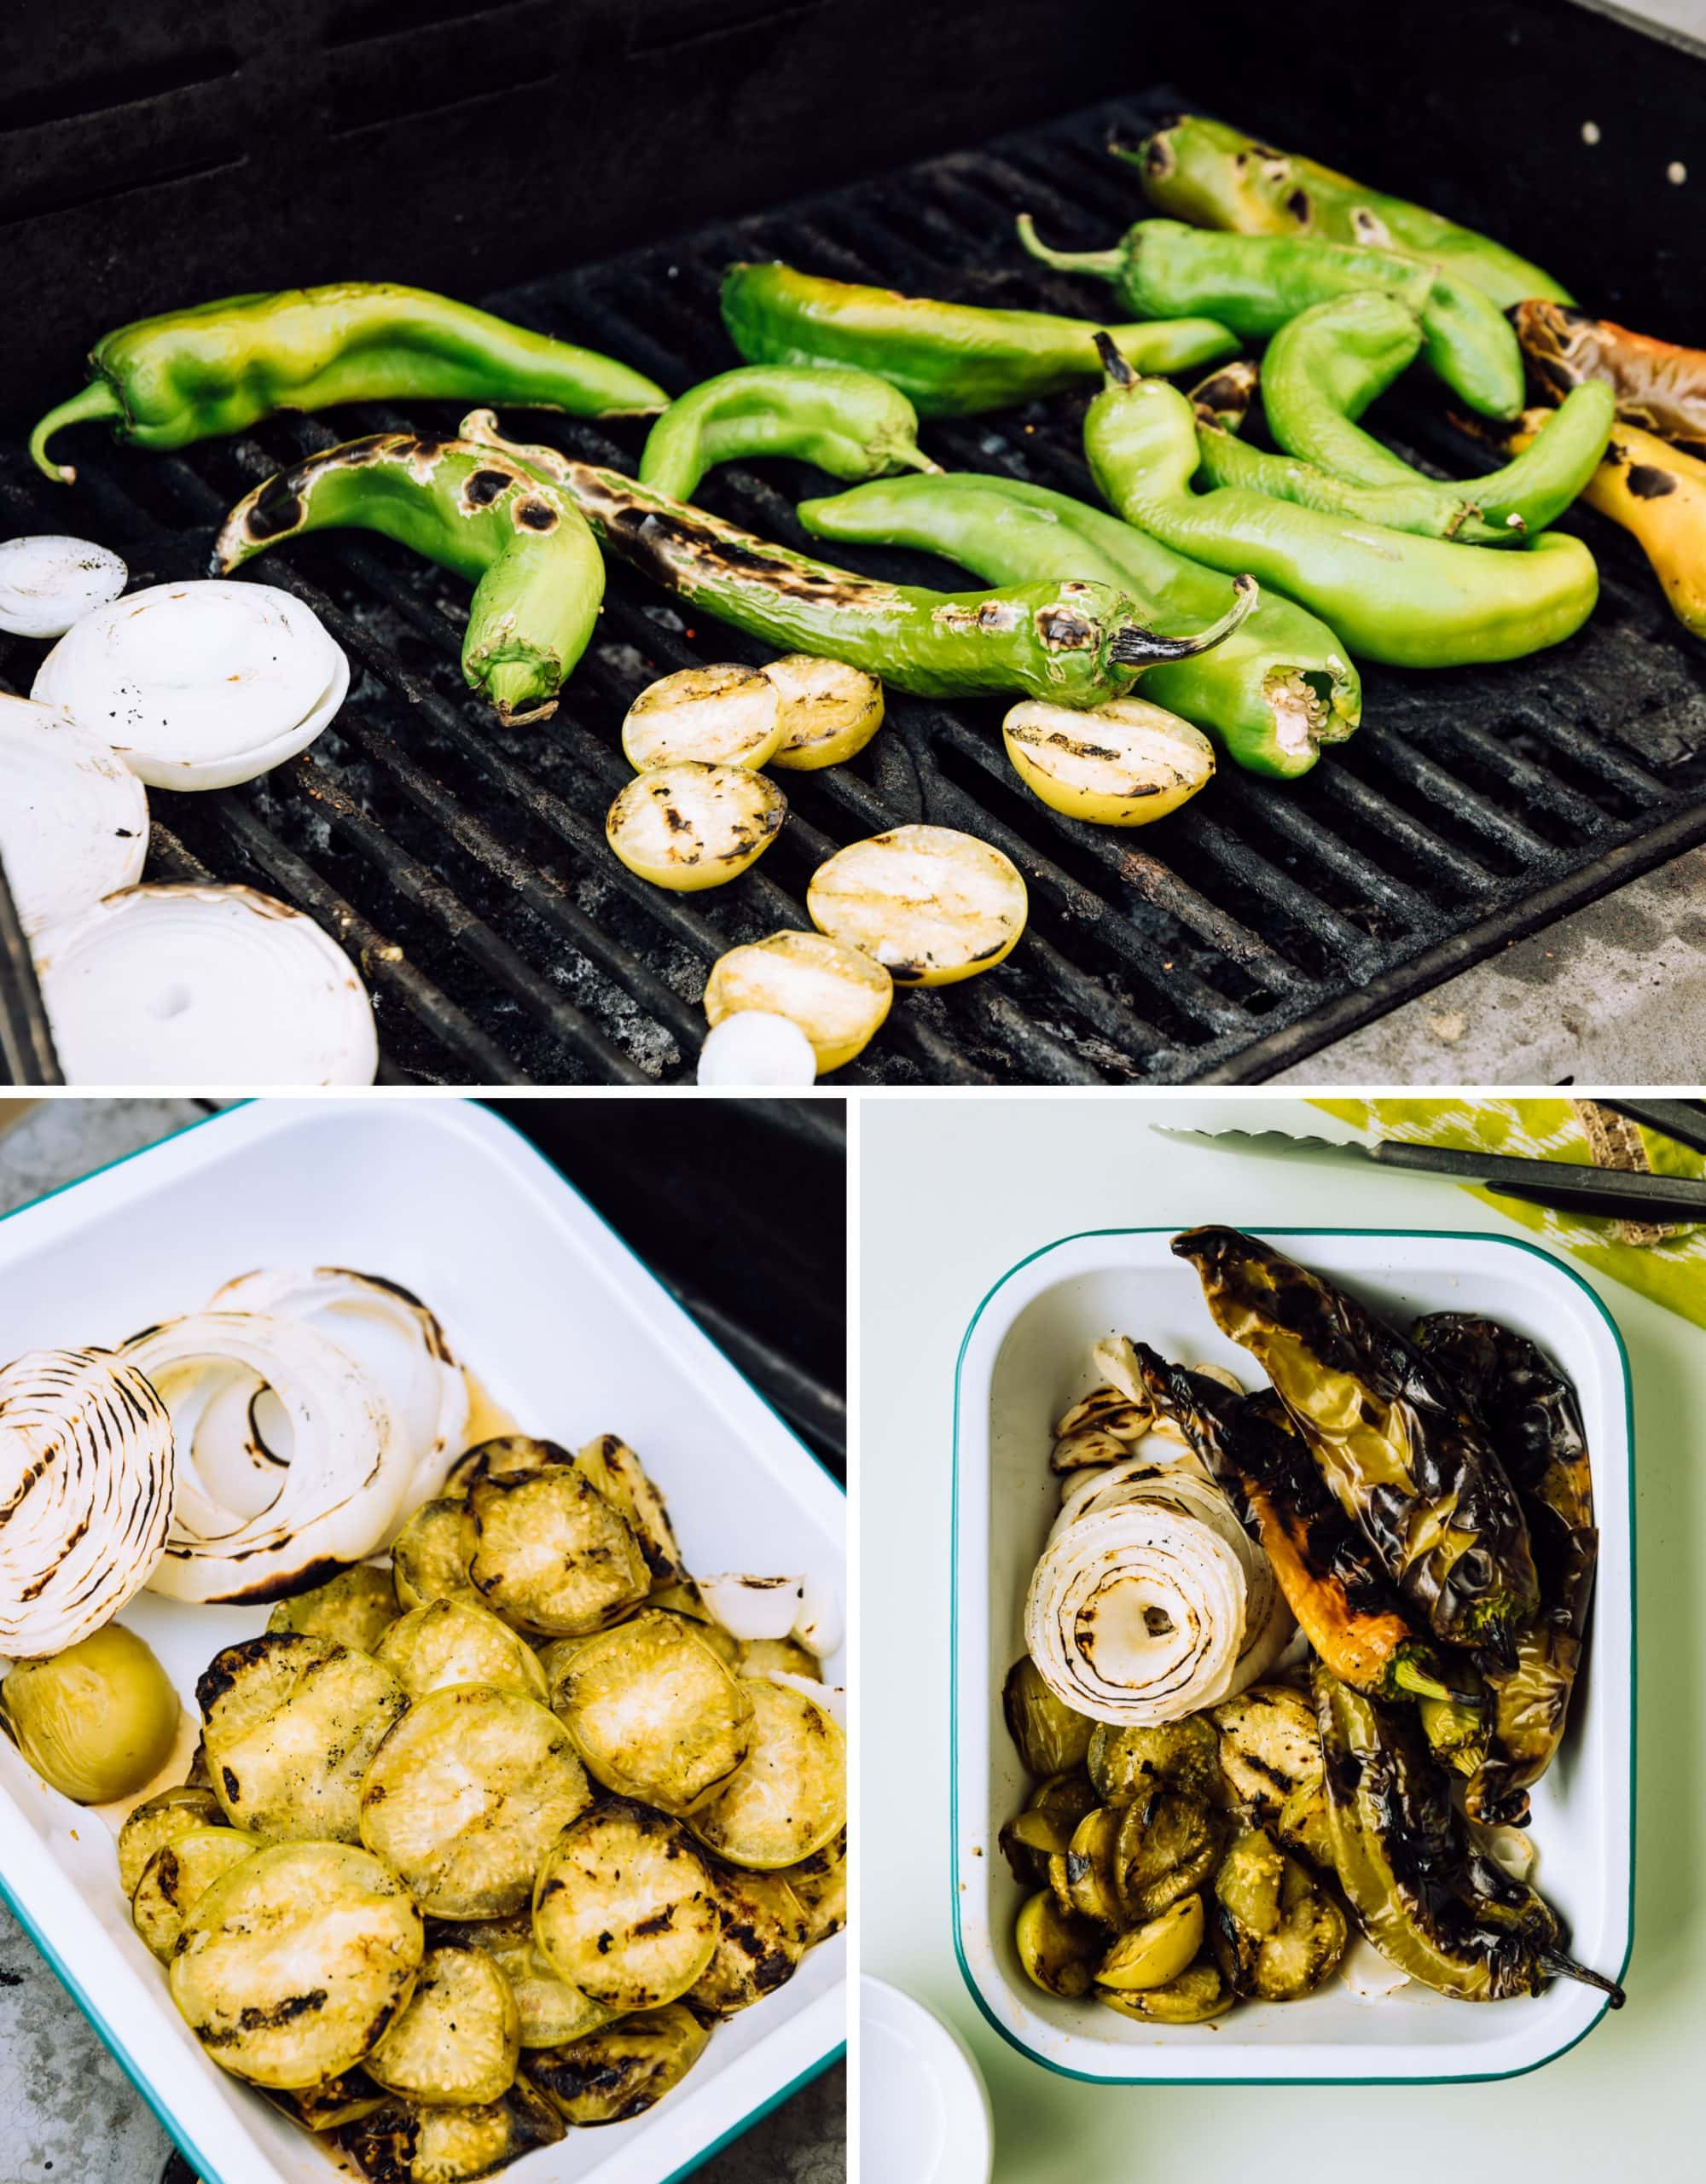 salsa prep photo collage, onion, tomatillos and chiles on a grill, tomatillos and onion in a pan, roasted chiles, tomatillo, onion and garlic in a pan